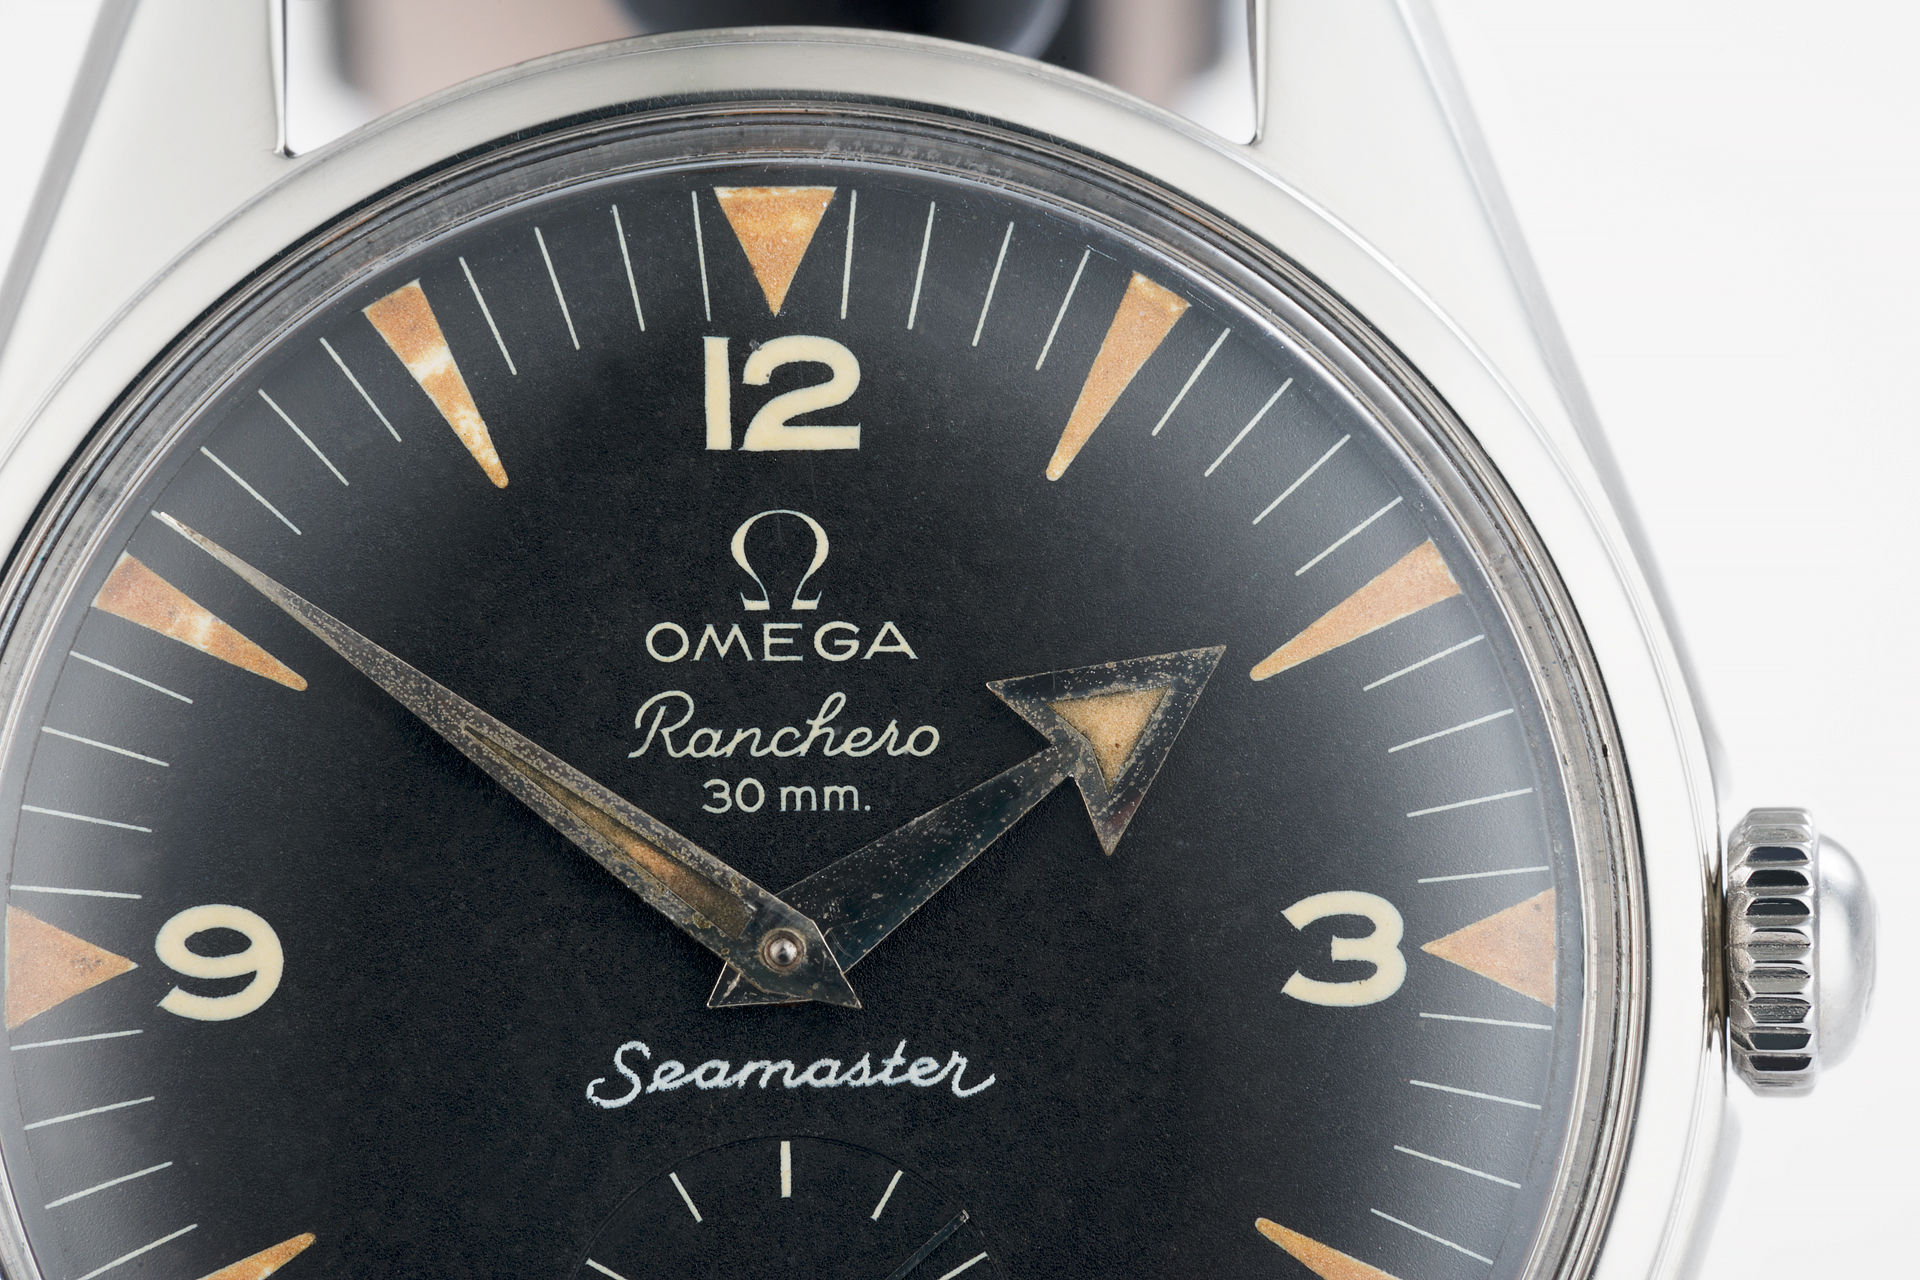 ref 2990 | 'Produced For 1 year Only' | Omega Ranchero